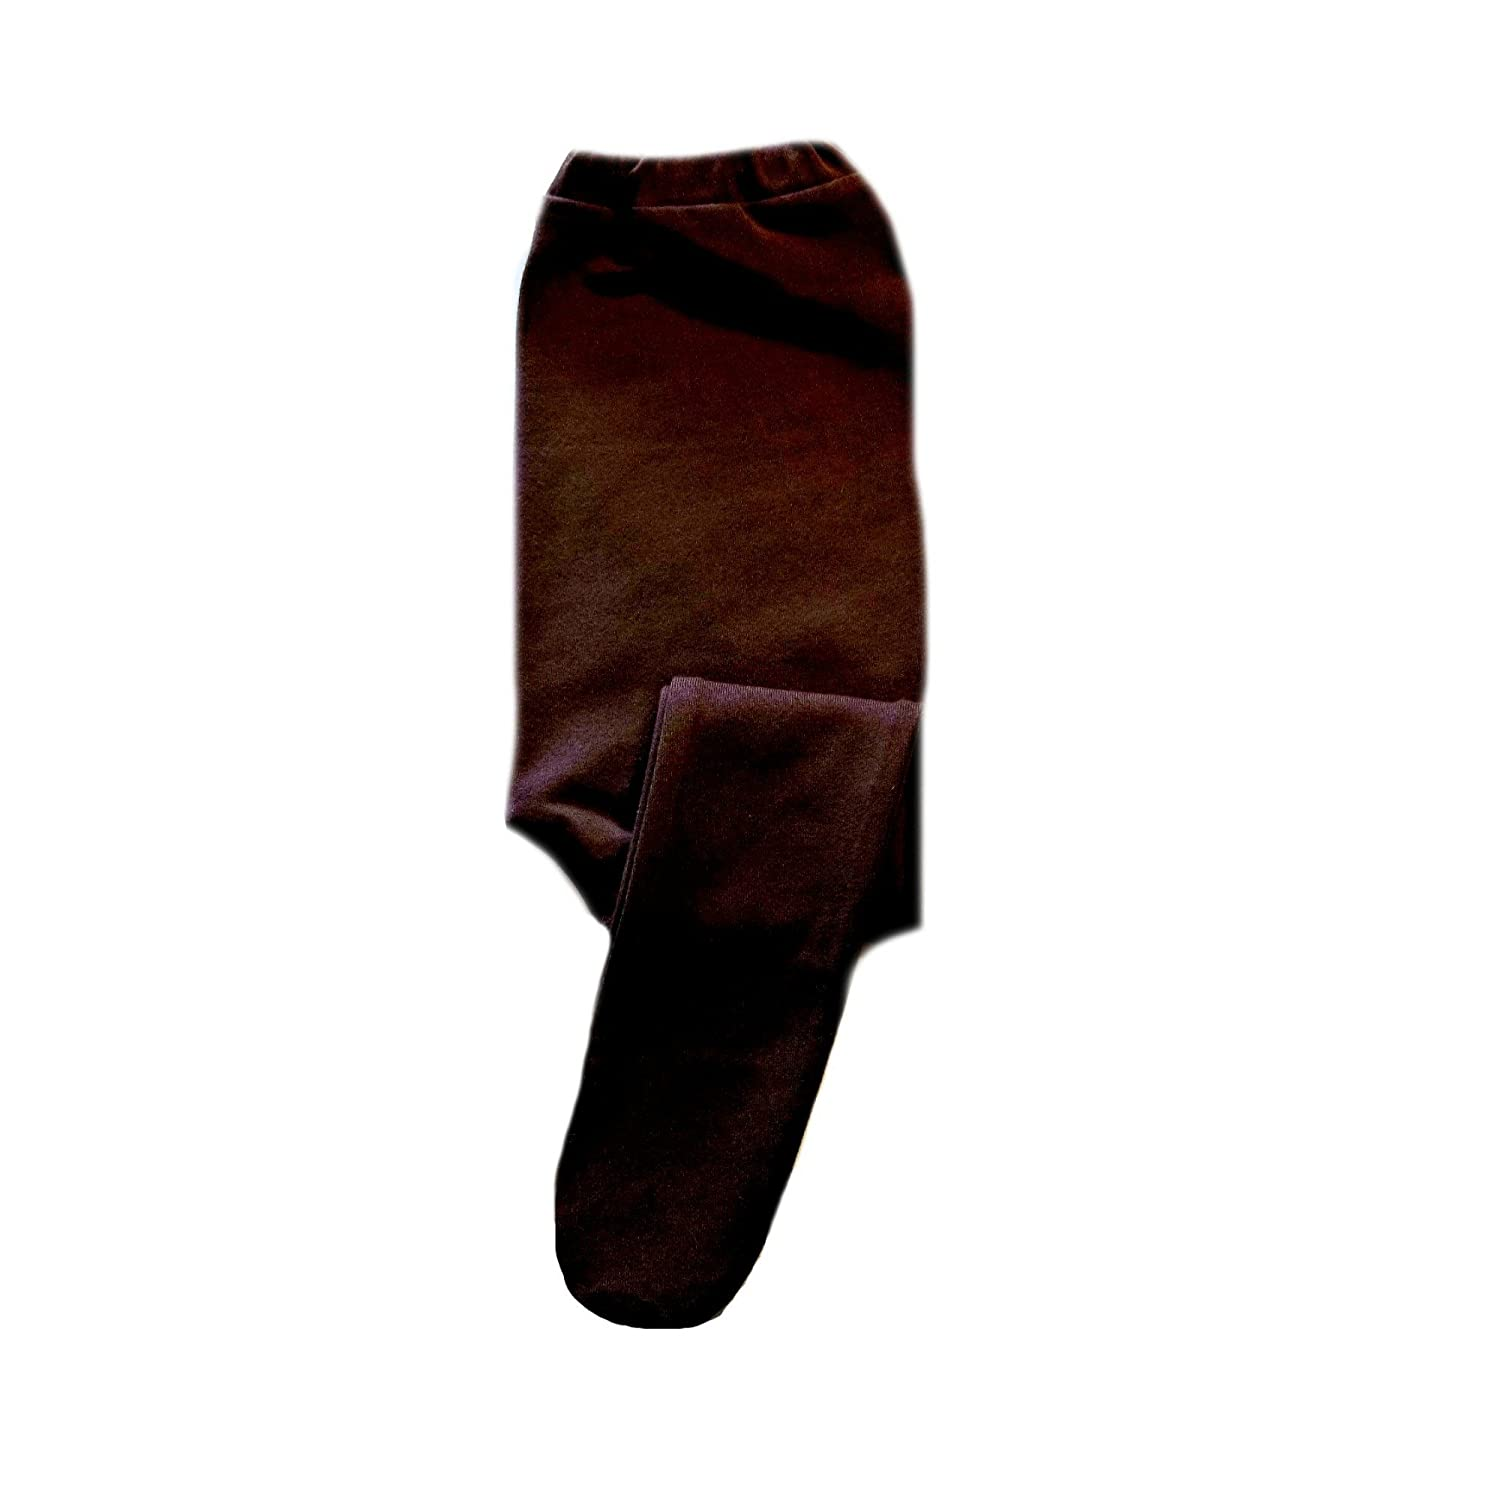 Jacquis Baby Boys Brown Cotton Lycra Footed Pants 6-12 Months